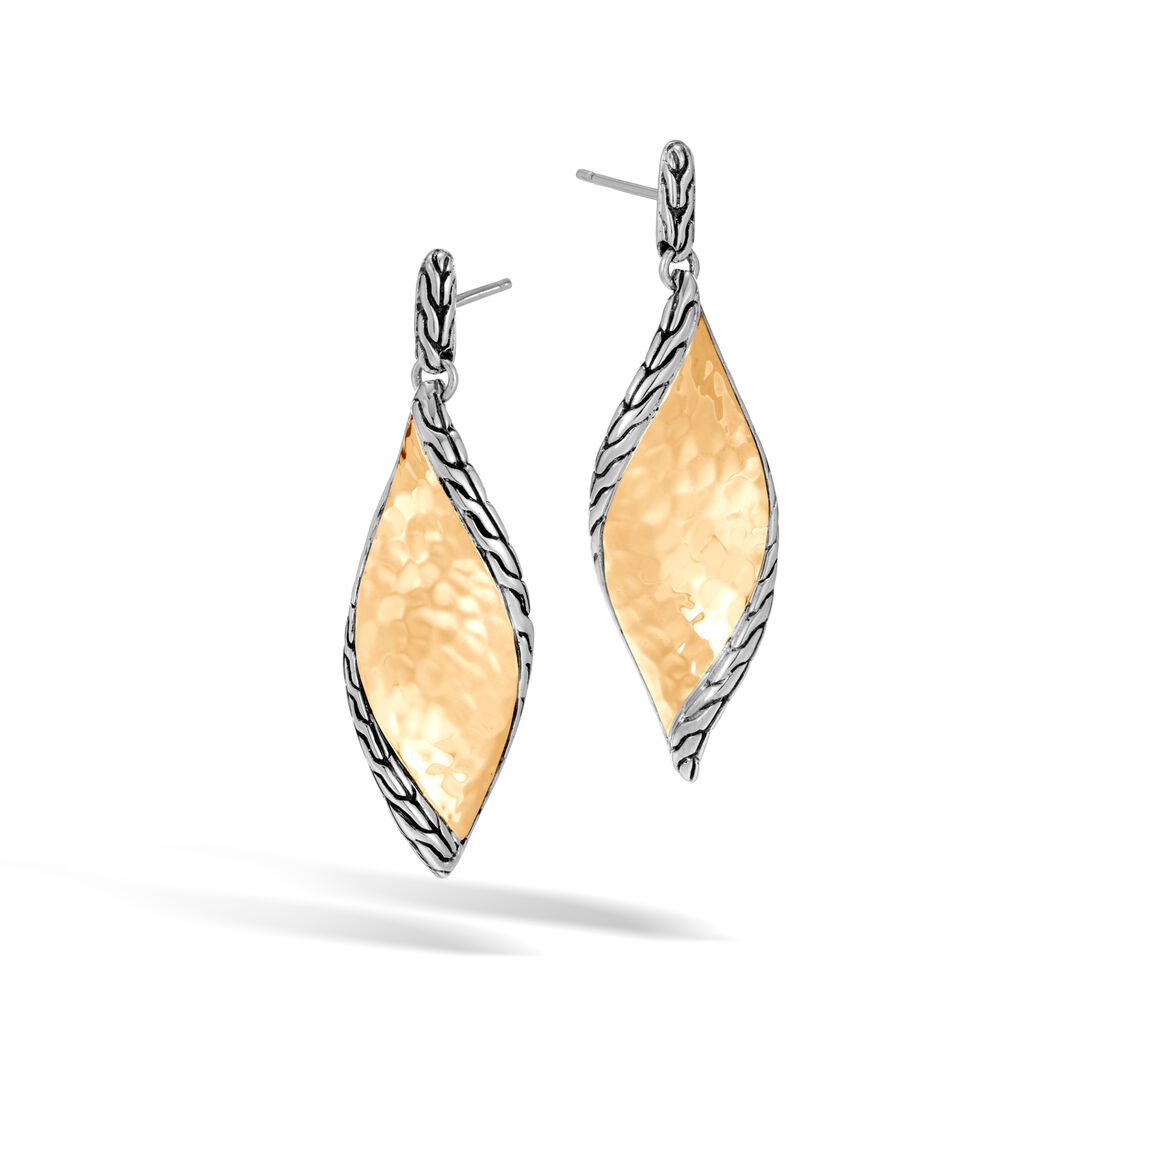 Classic Chain Wave Drop Earring, Silver, Hammered 18K Gold